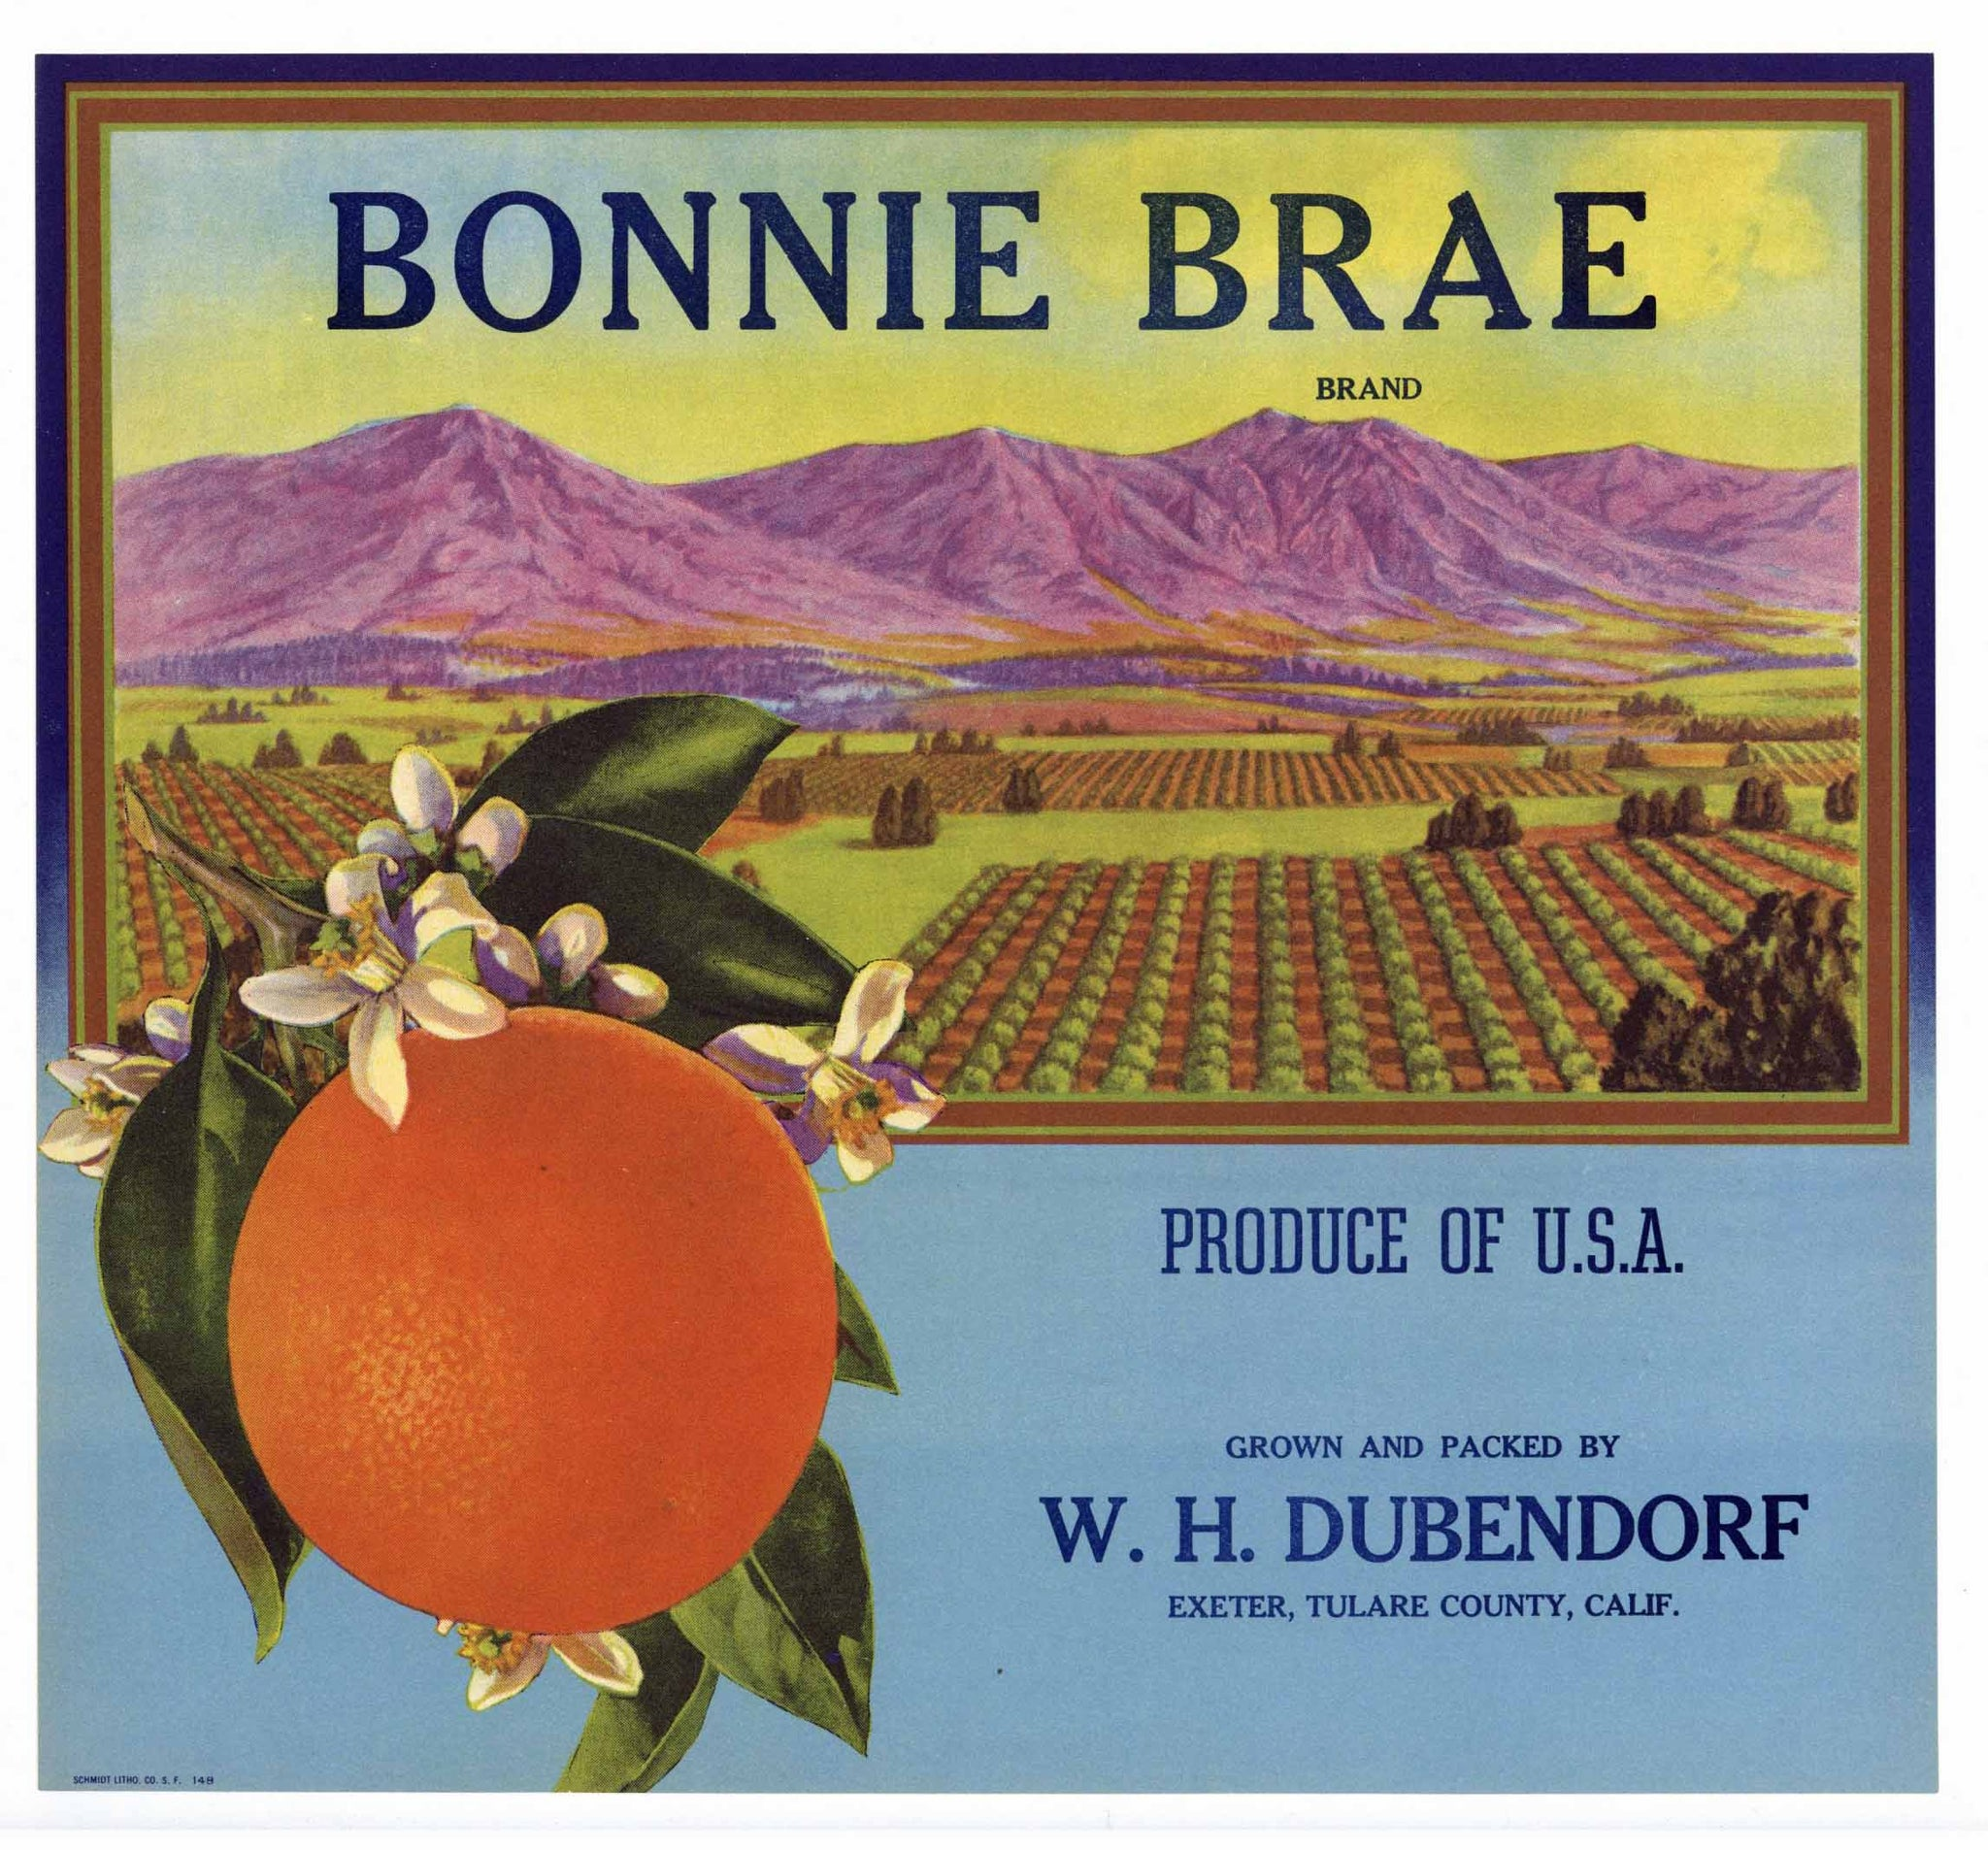 Bonnie Brae Brand Vintage Tulare County Orange Crate Label